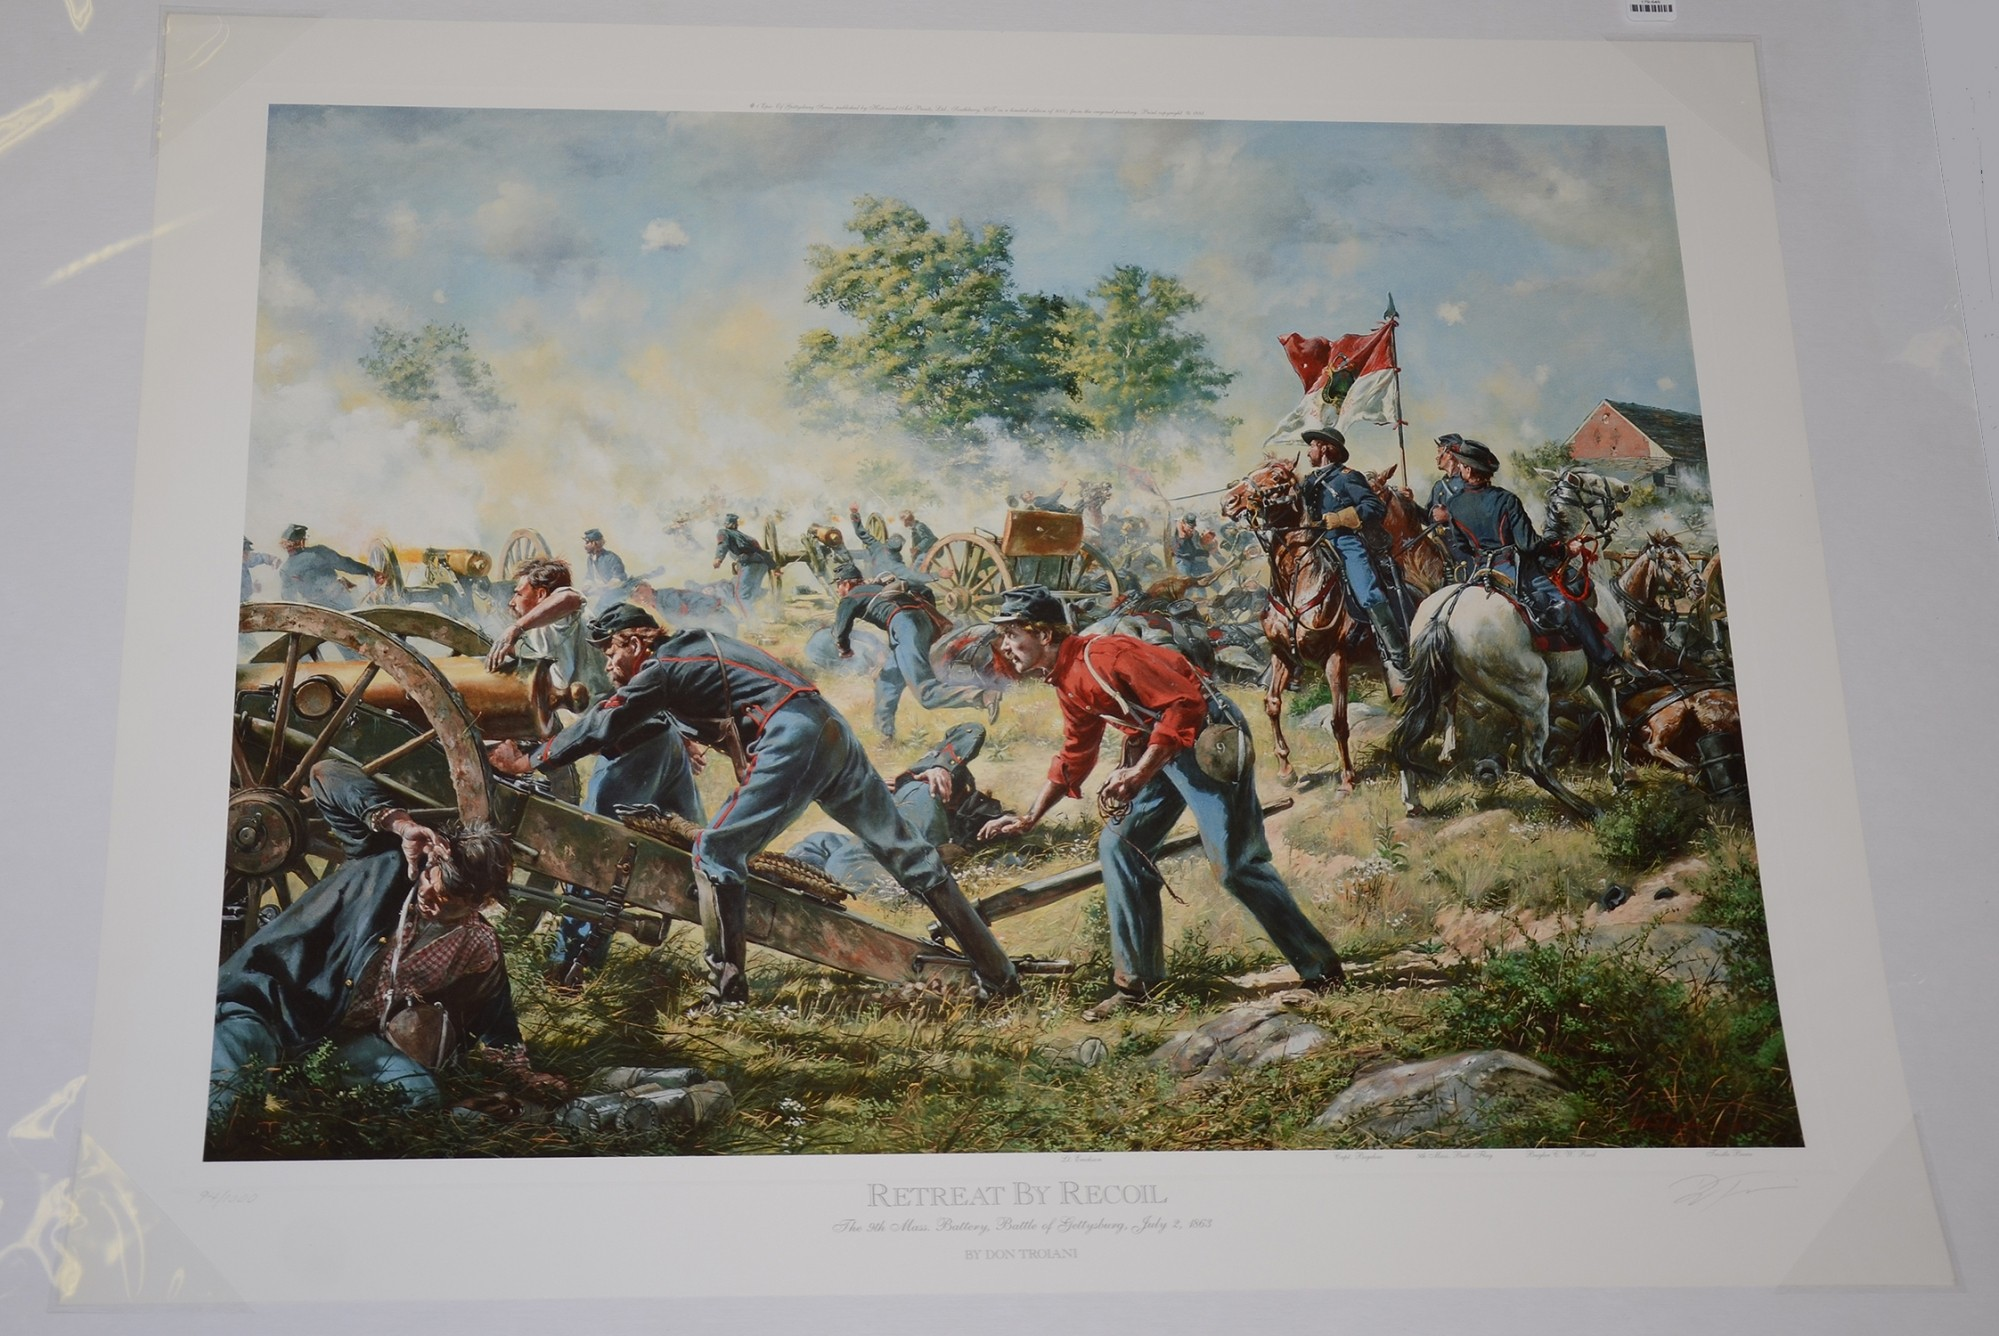 RETREAT BY RECOIL: THE 9TH MASSACHUSETTS BATTERY, BATTLE OF GETTYSBURG, JULY 2, 1863 - DON TROIANI